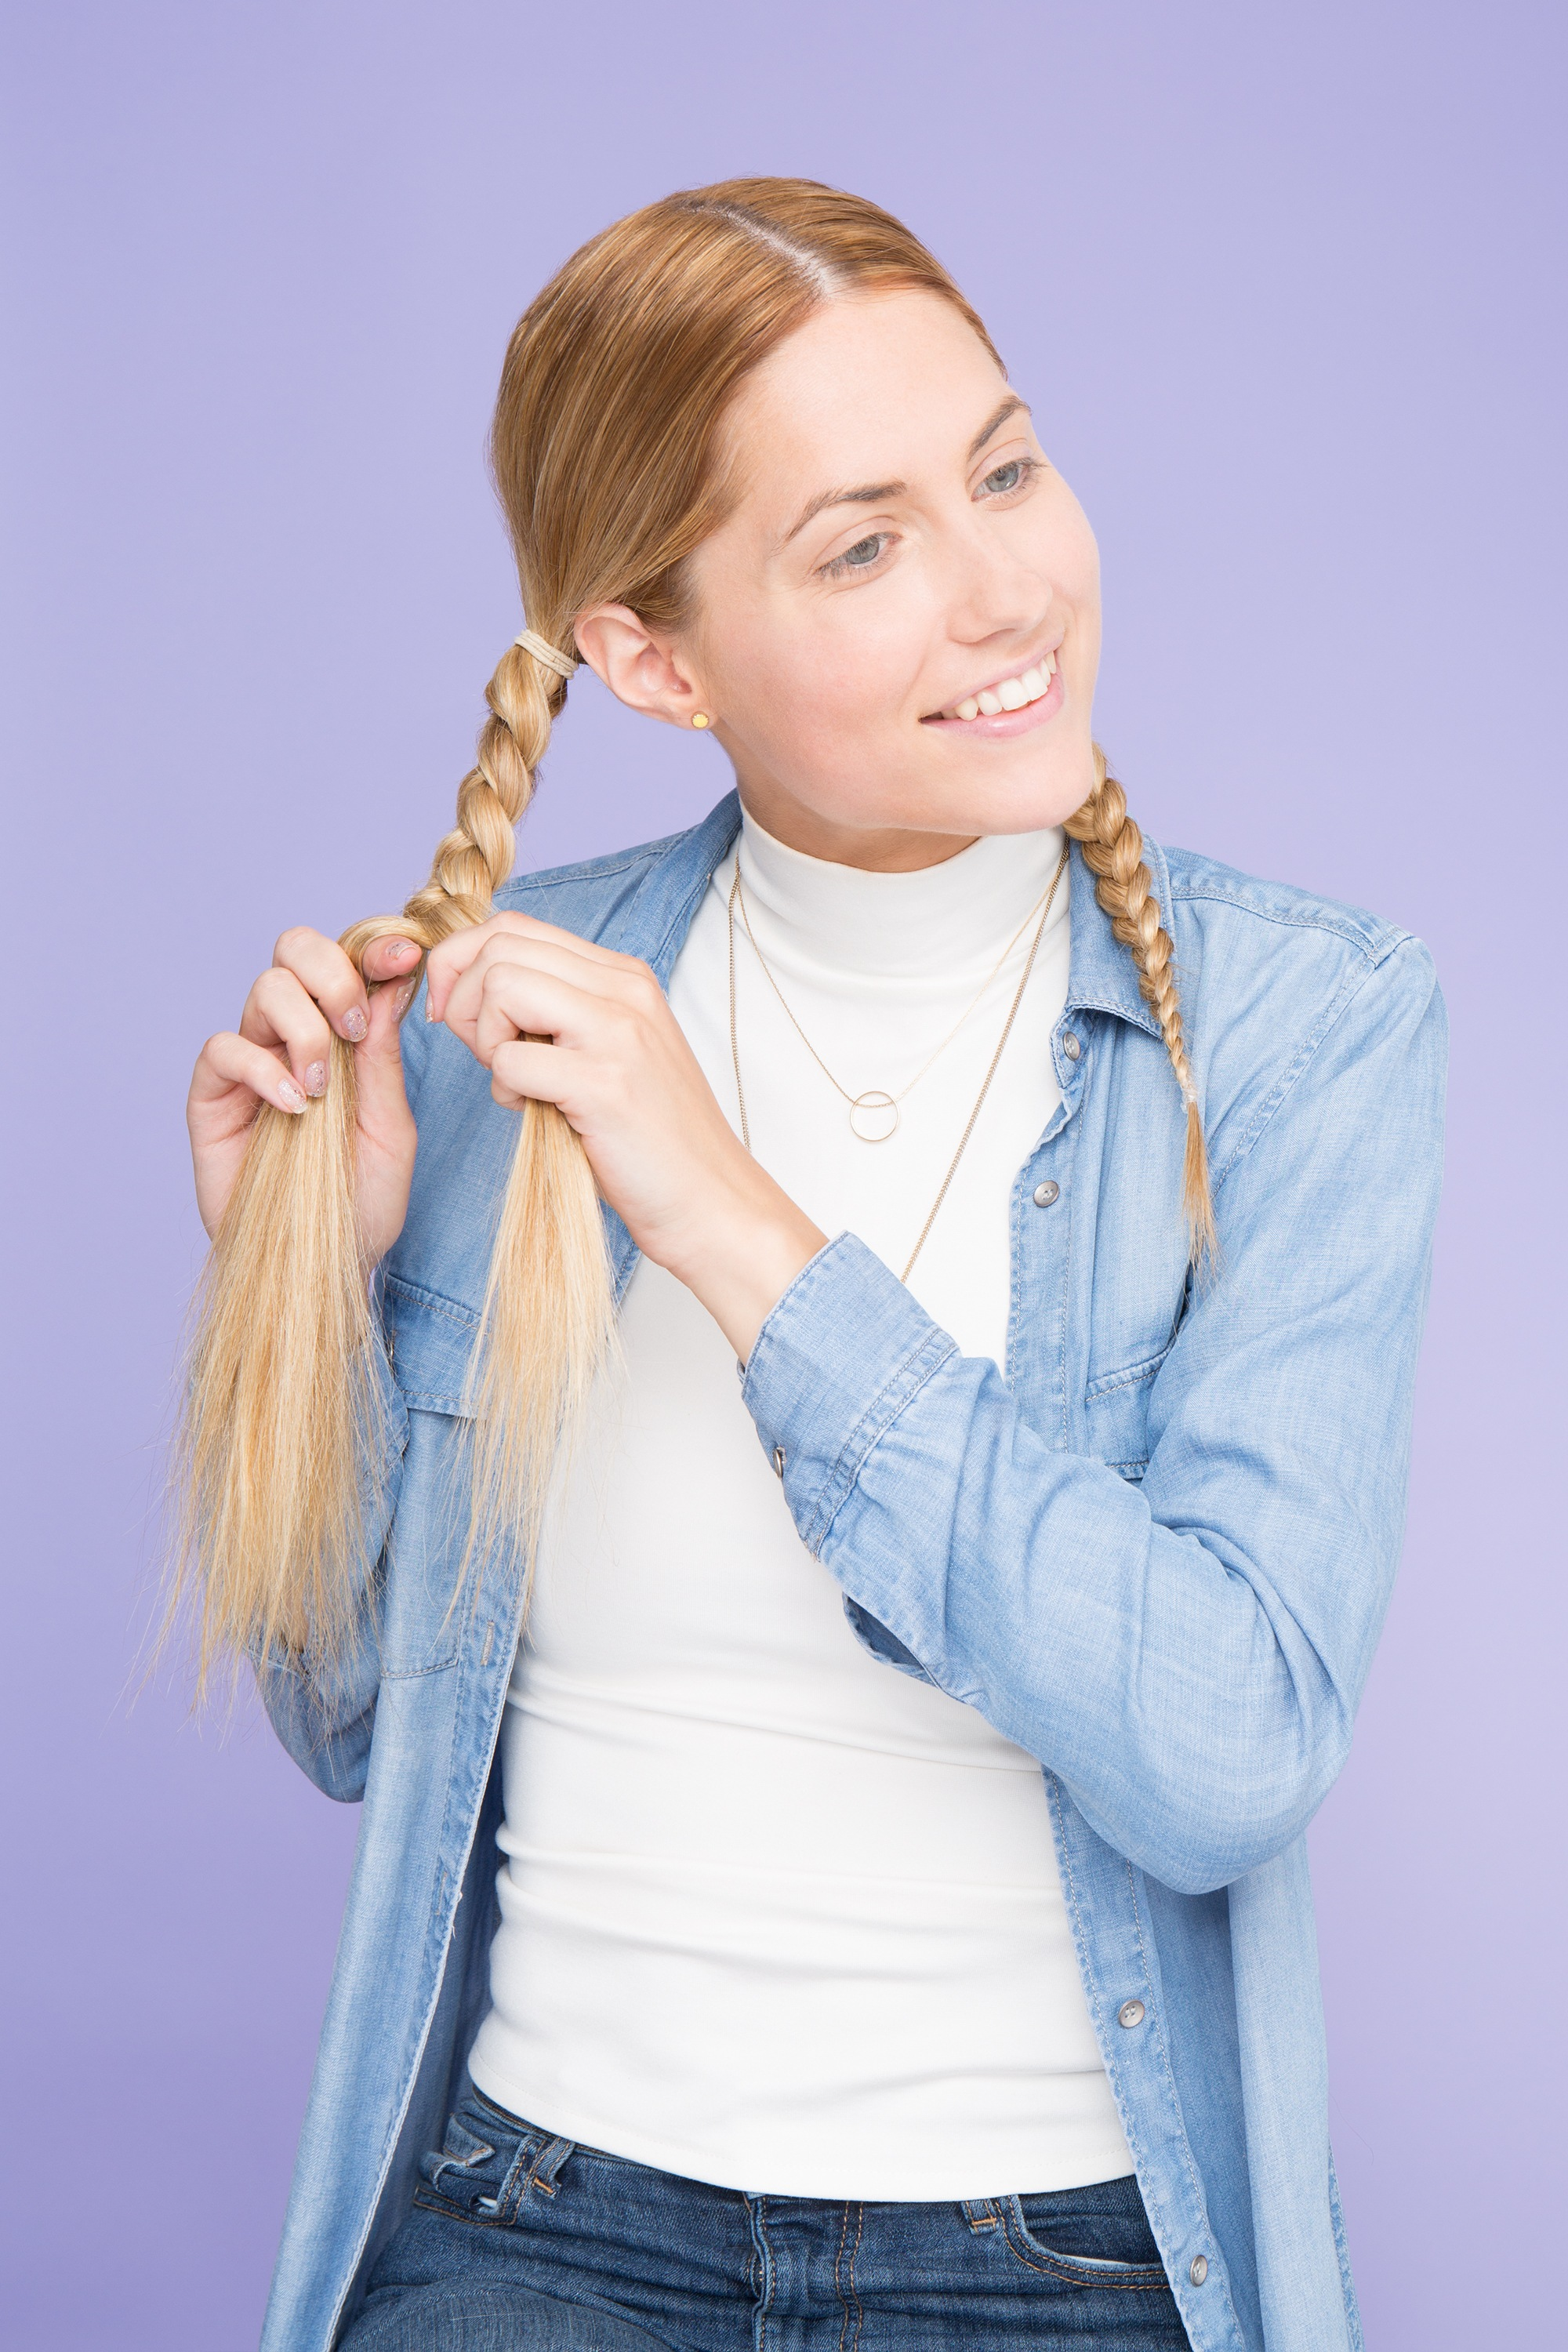 a blonde woman making braided pigtail of her hair smiling aside